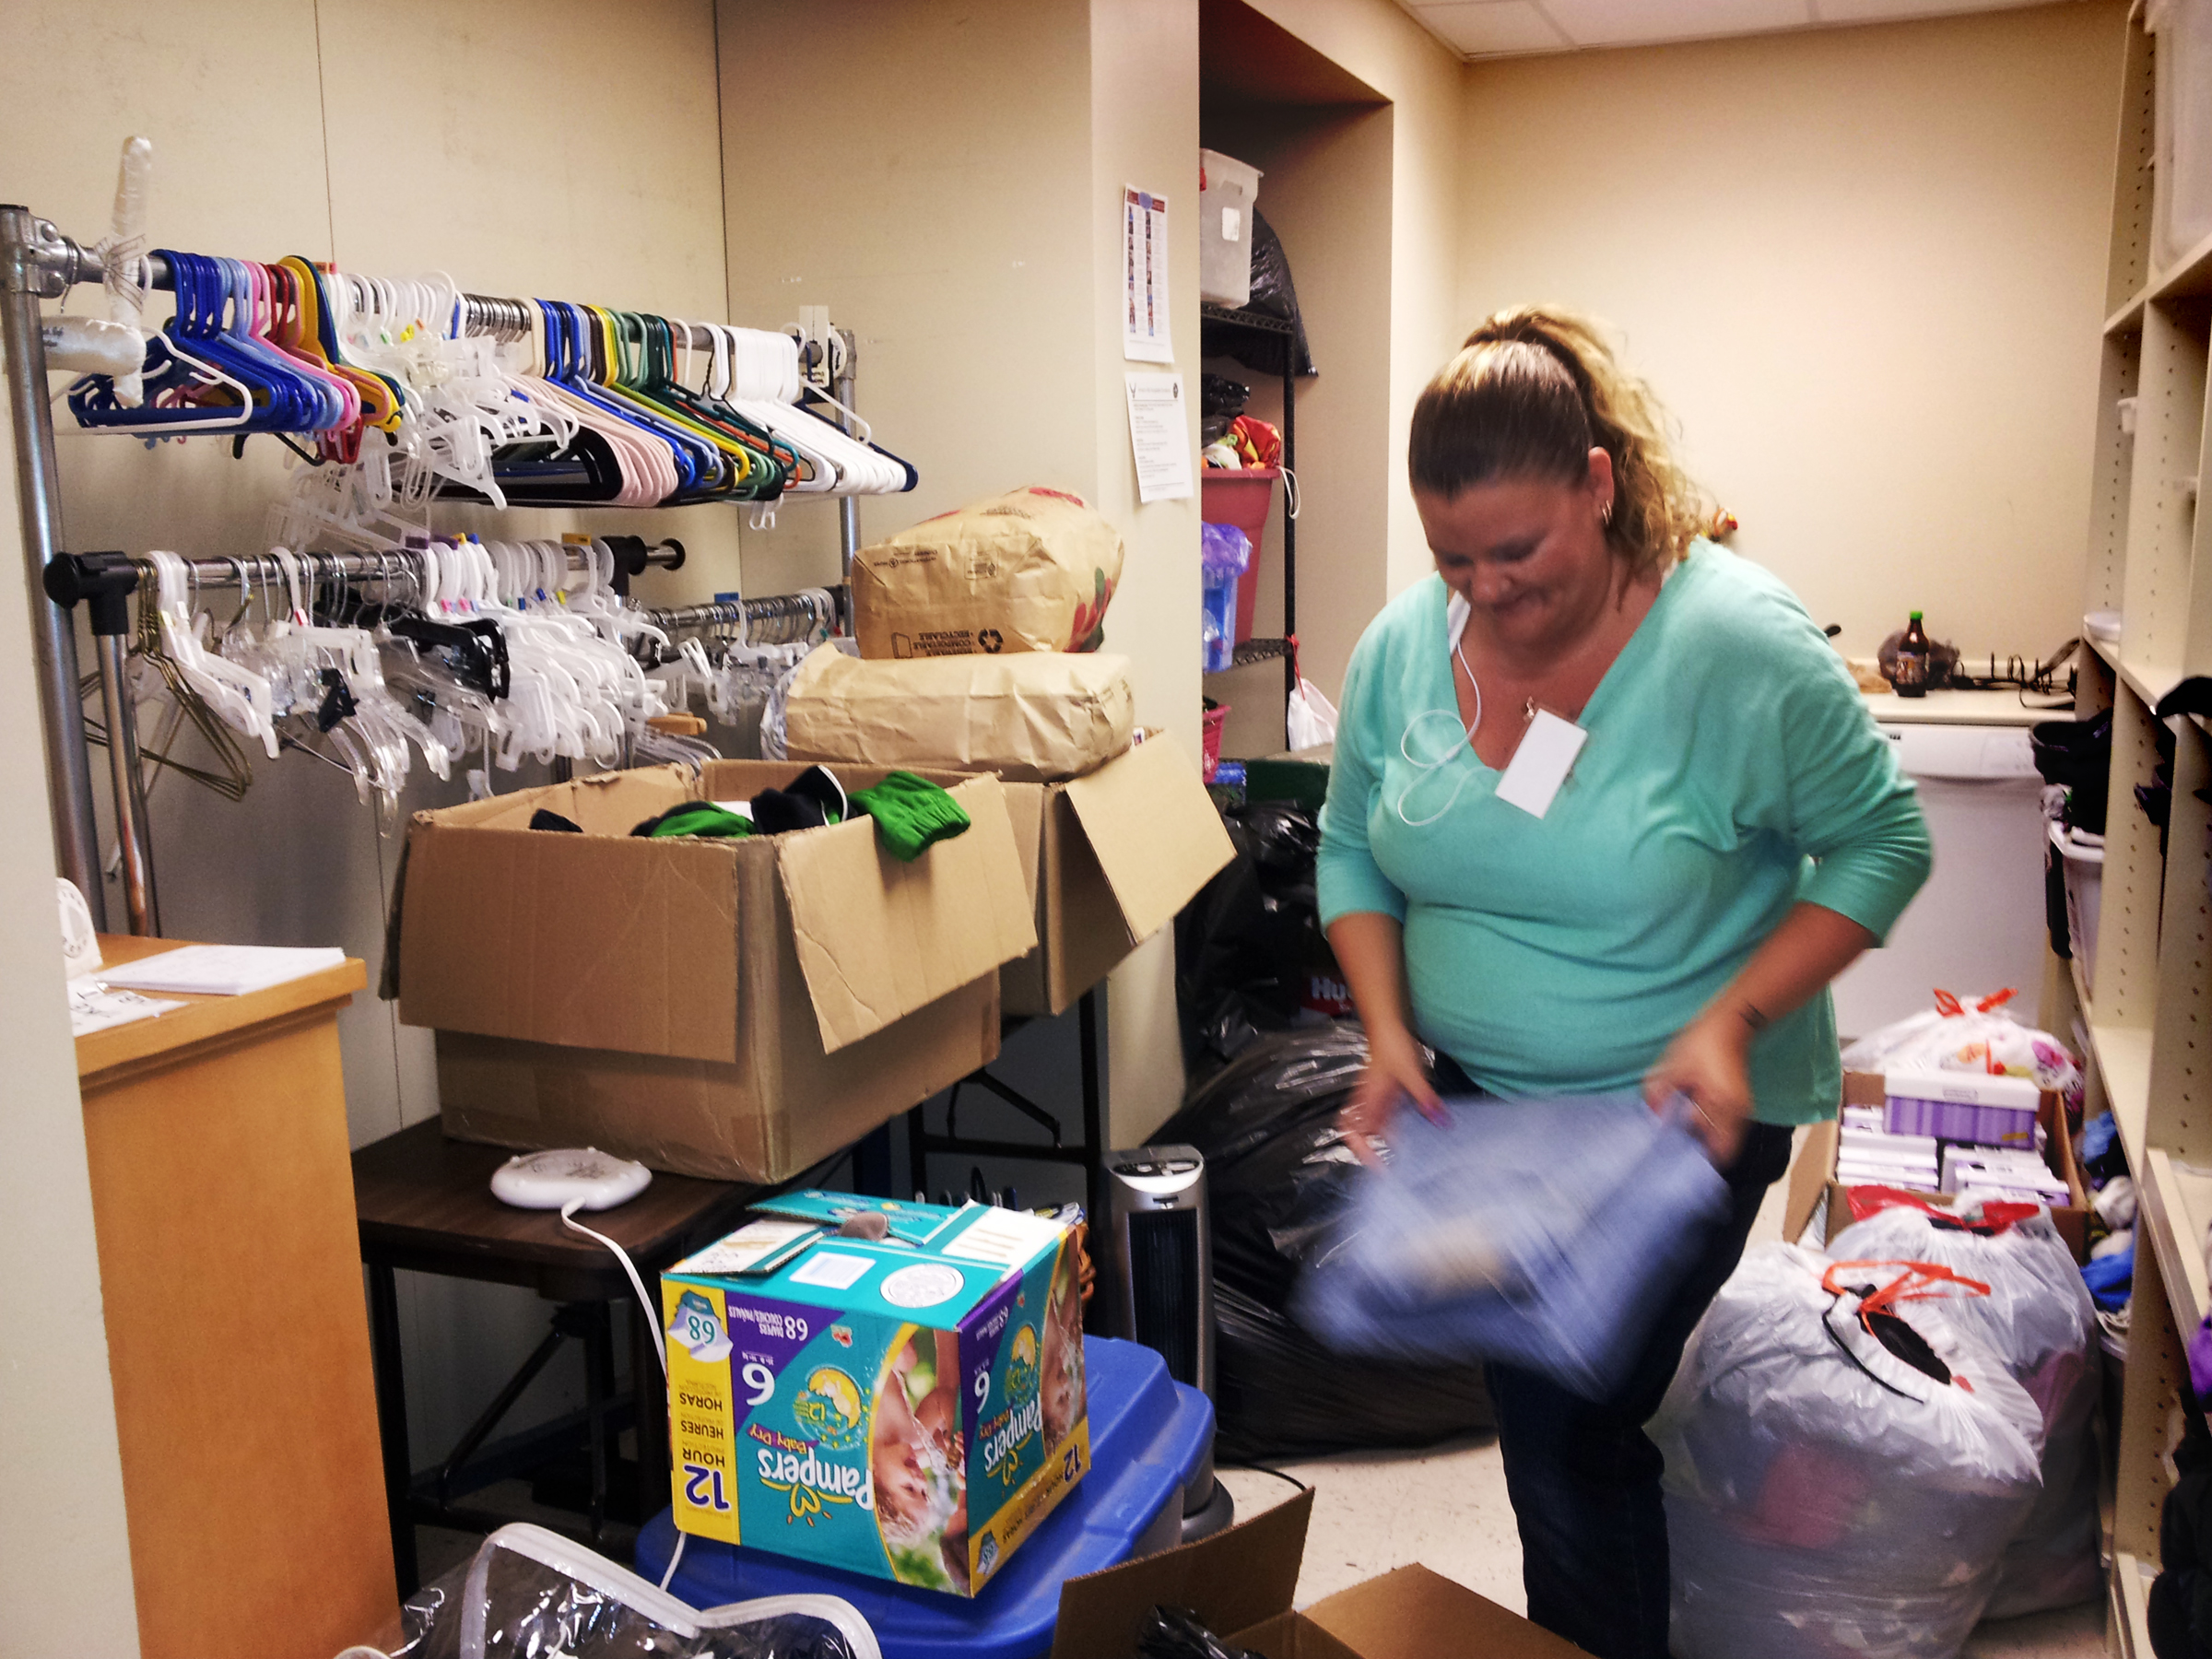 FileAndrea Collins sorts and folds donations in the Airmanu0027s Attic at Tinker Air Force & File:Andrea Collins sorts and folds donations in the Airmanu0027s Attic ...